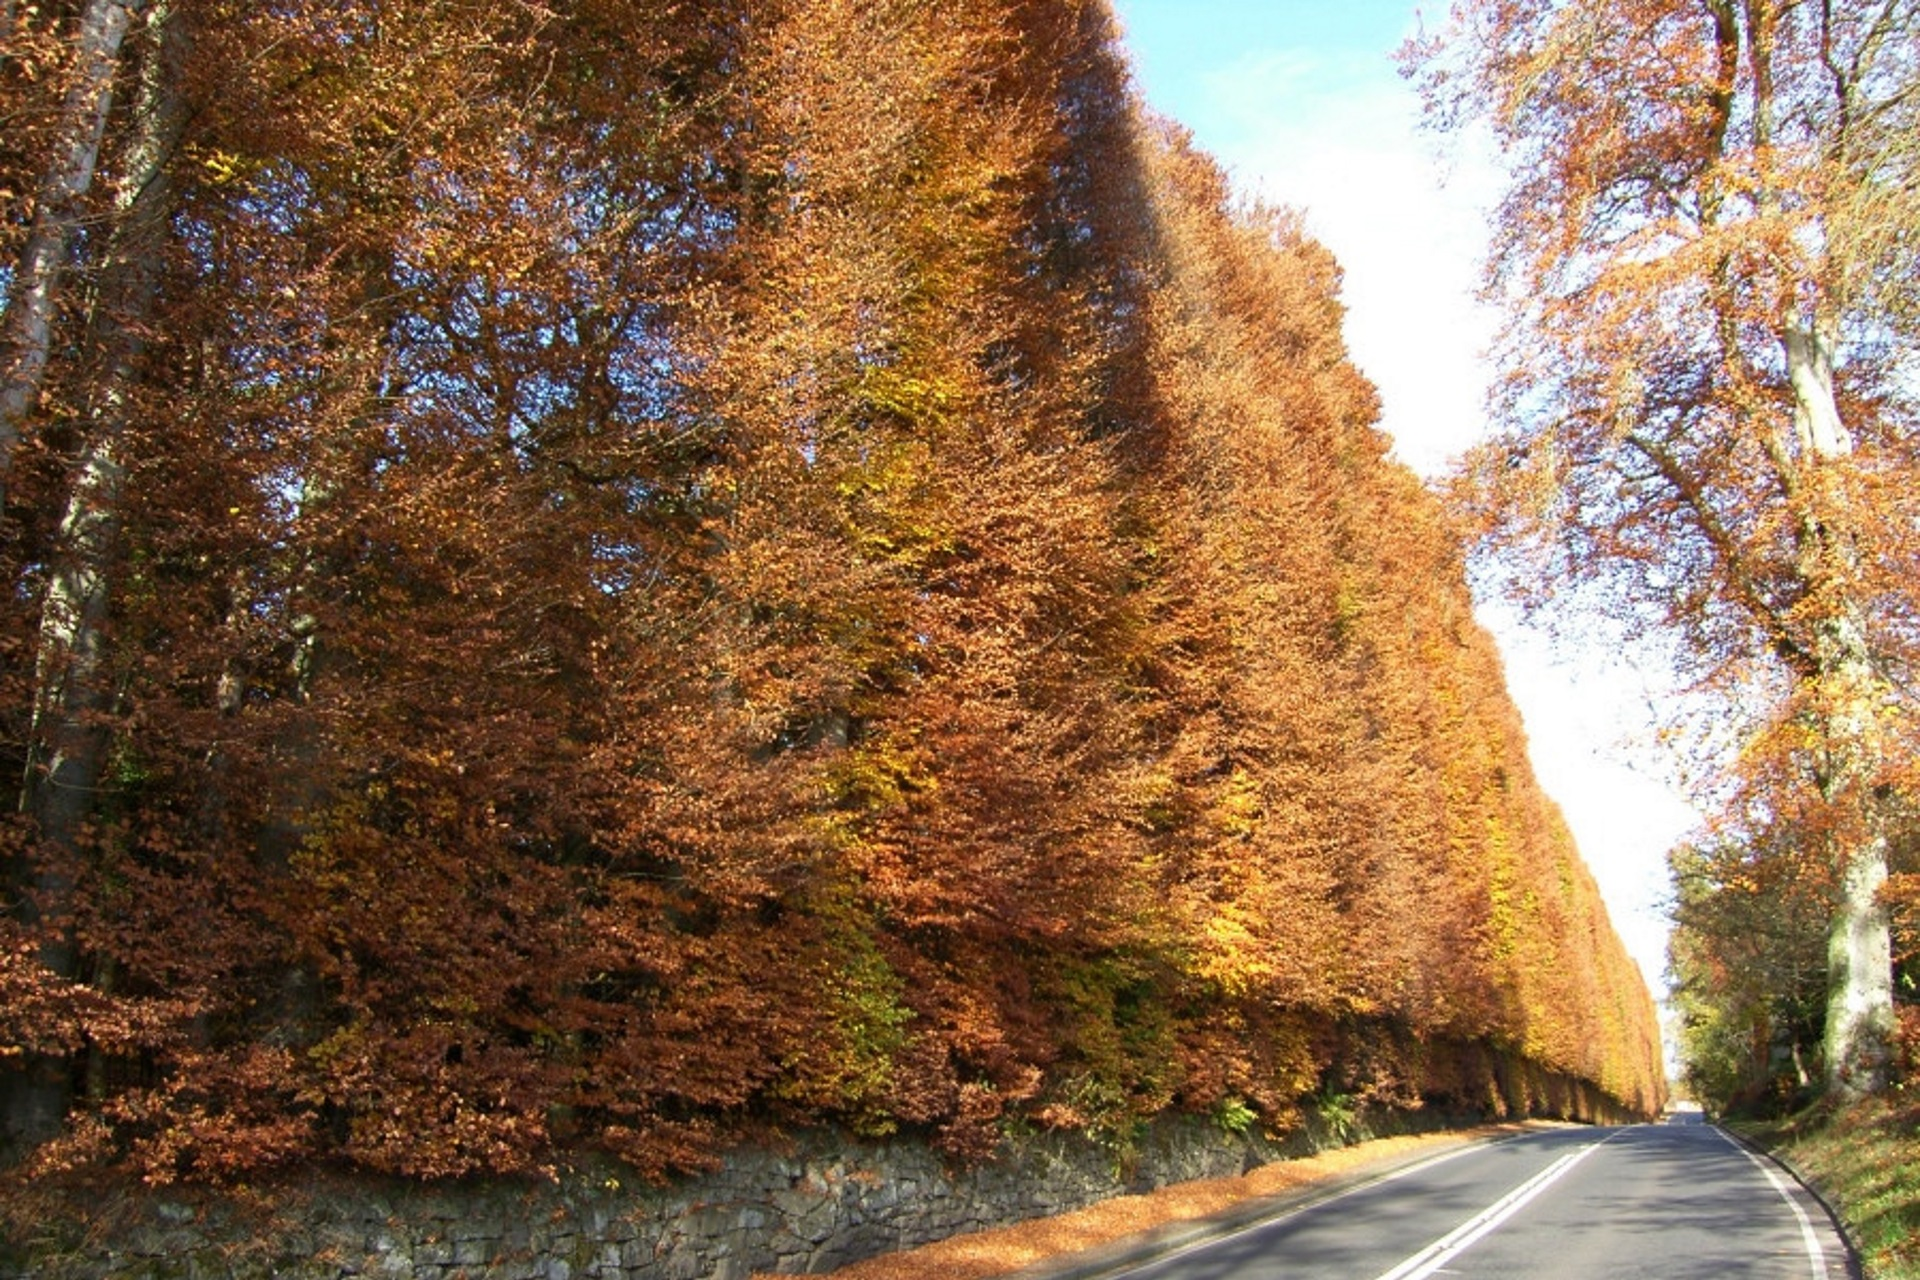 The Beech Hedges by Meikleour were planted by Jacobite supporters in 1745